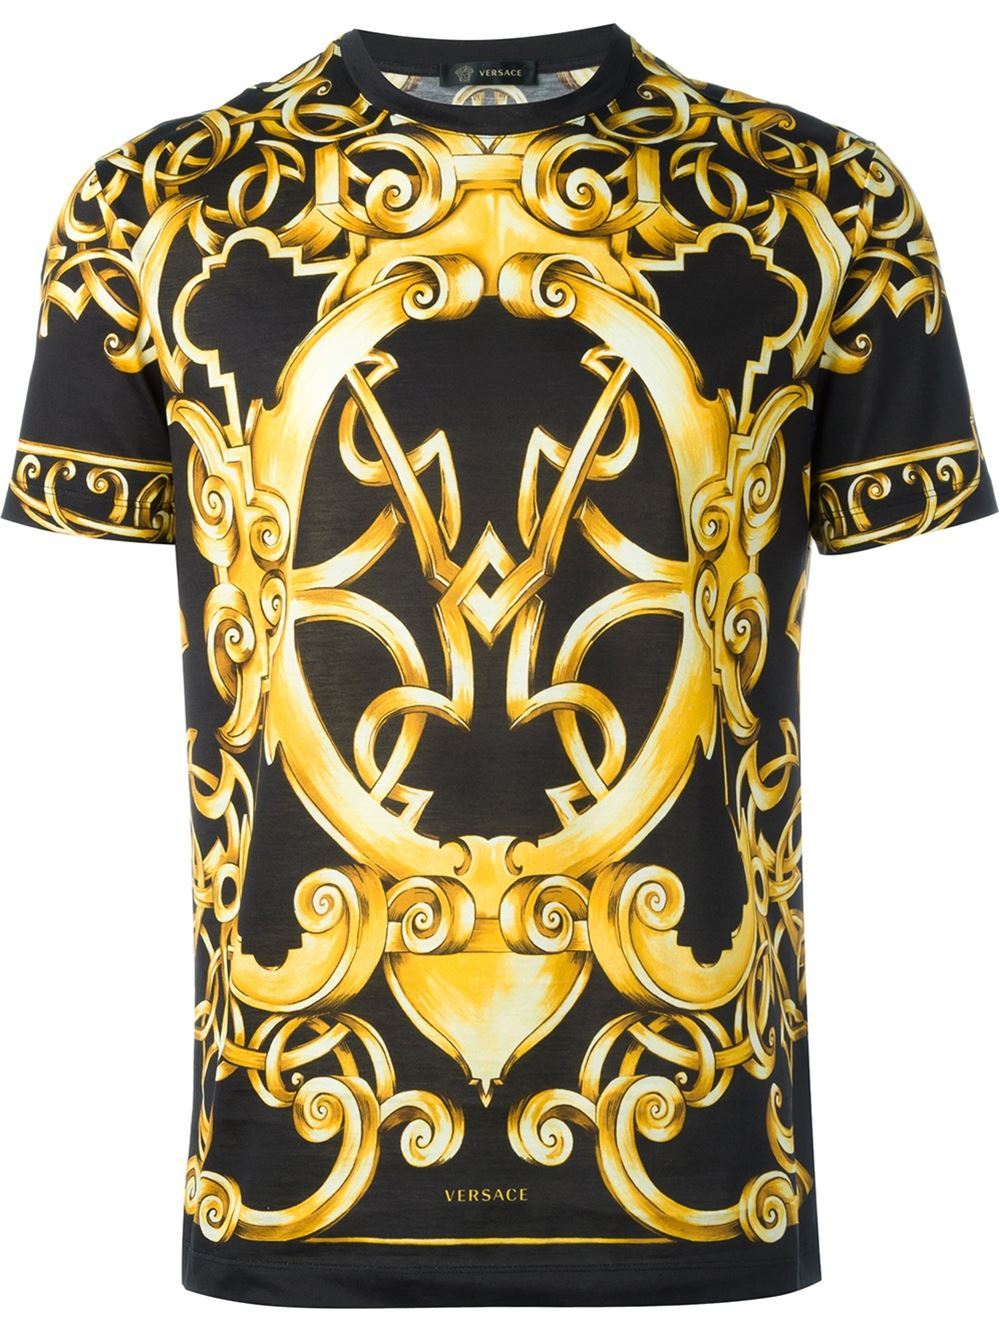 fadedc860f3 Lyst - Versace Baroque Print T-shirt in Black for Men